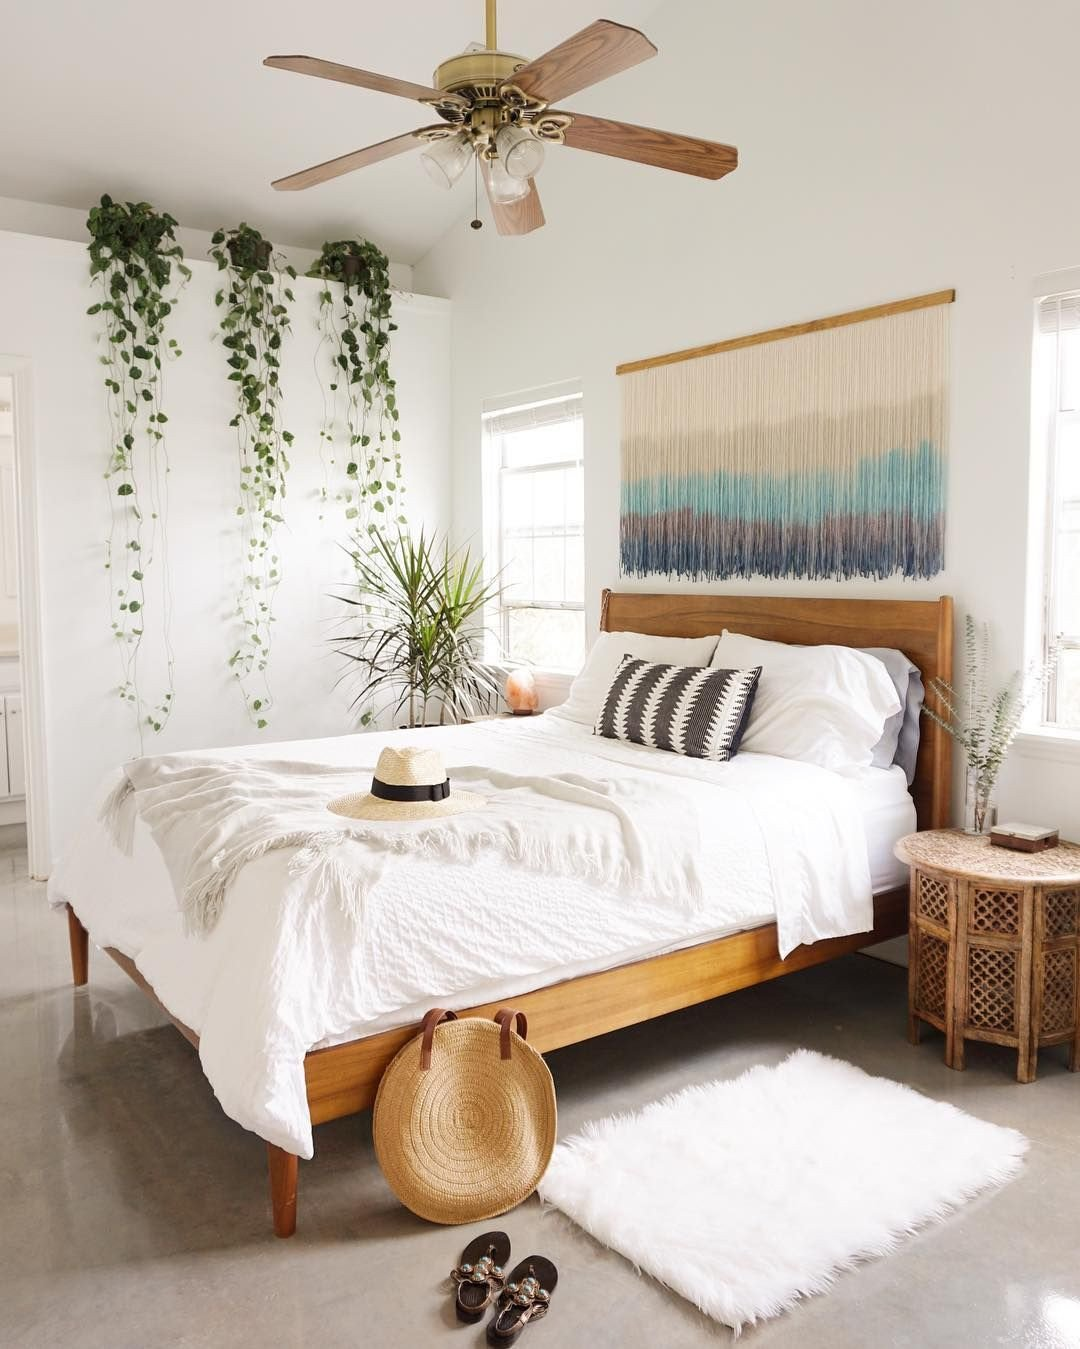 Fan Size for Bedroom Beautiful 65 Amazing Ideas for Your Small Bedroom